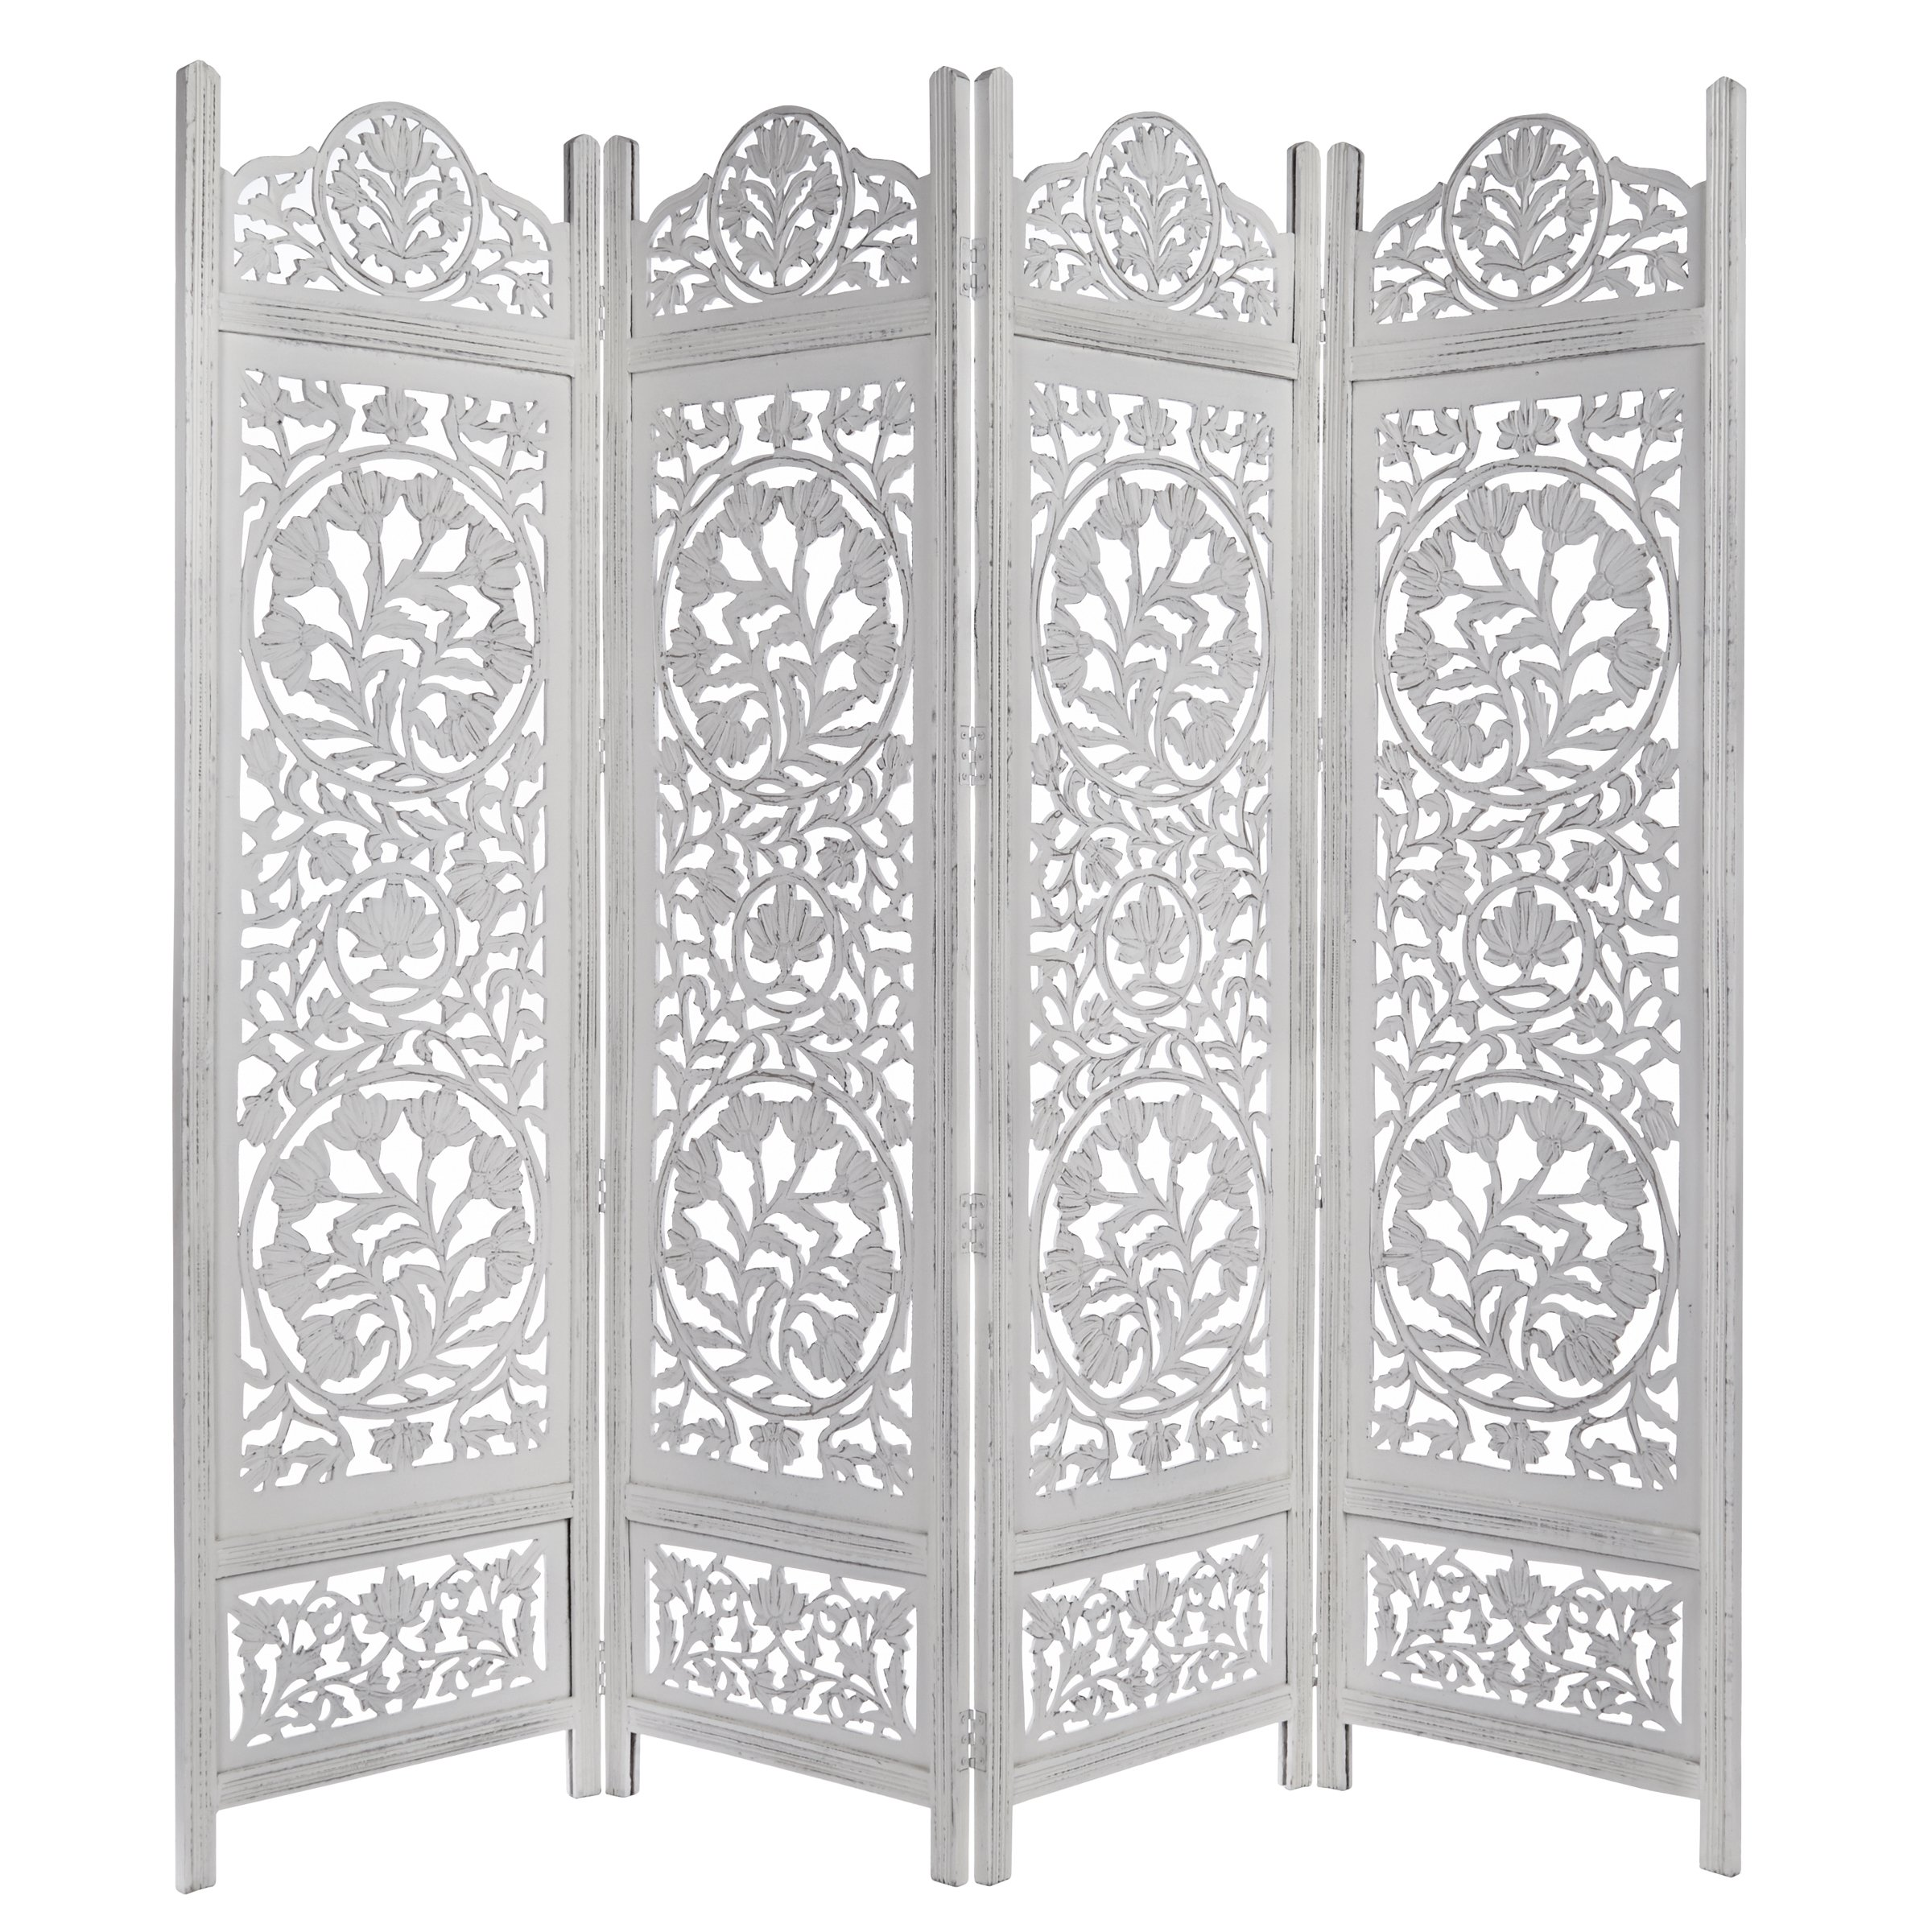 Kamal The Lotus Antique White 4 Panel Handcrafted Wood Room Divider Screen 72x80, Intricately carved on both sides making it fully reversible, highly versatile. Hides clutter, adds dÃcor by Cotton Craft (Image #1)